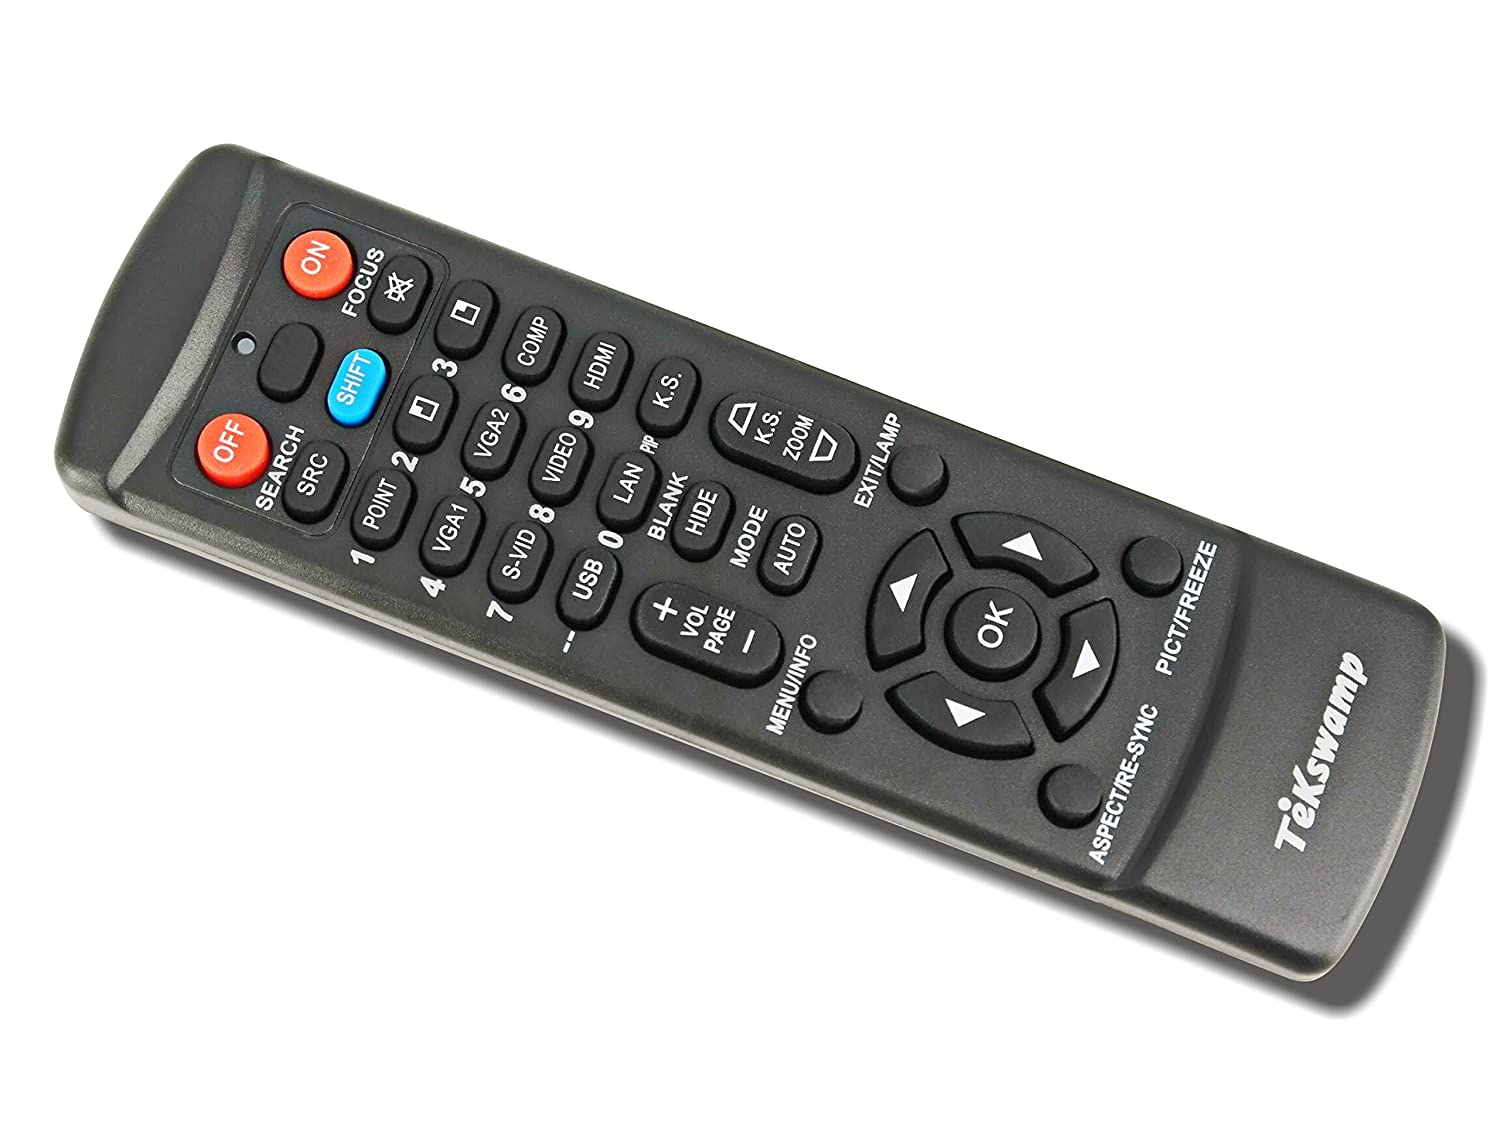 Black TeKswamp Video Projector Remote Control for NEC M283X